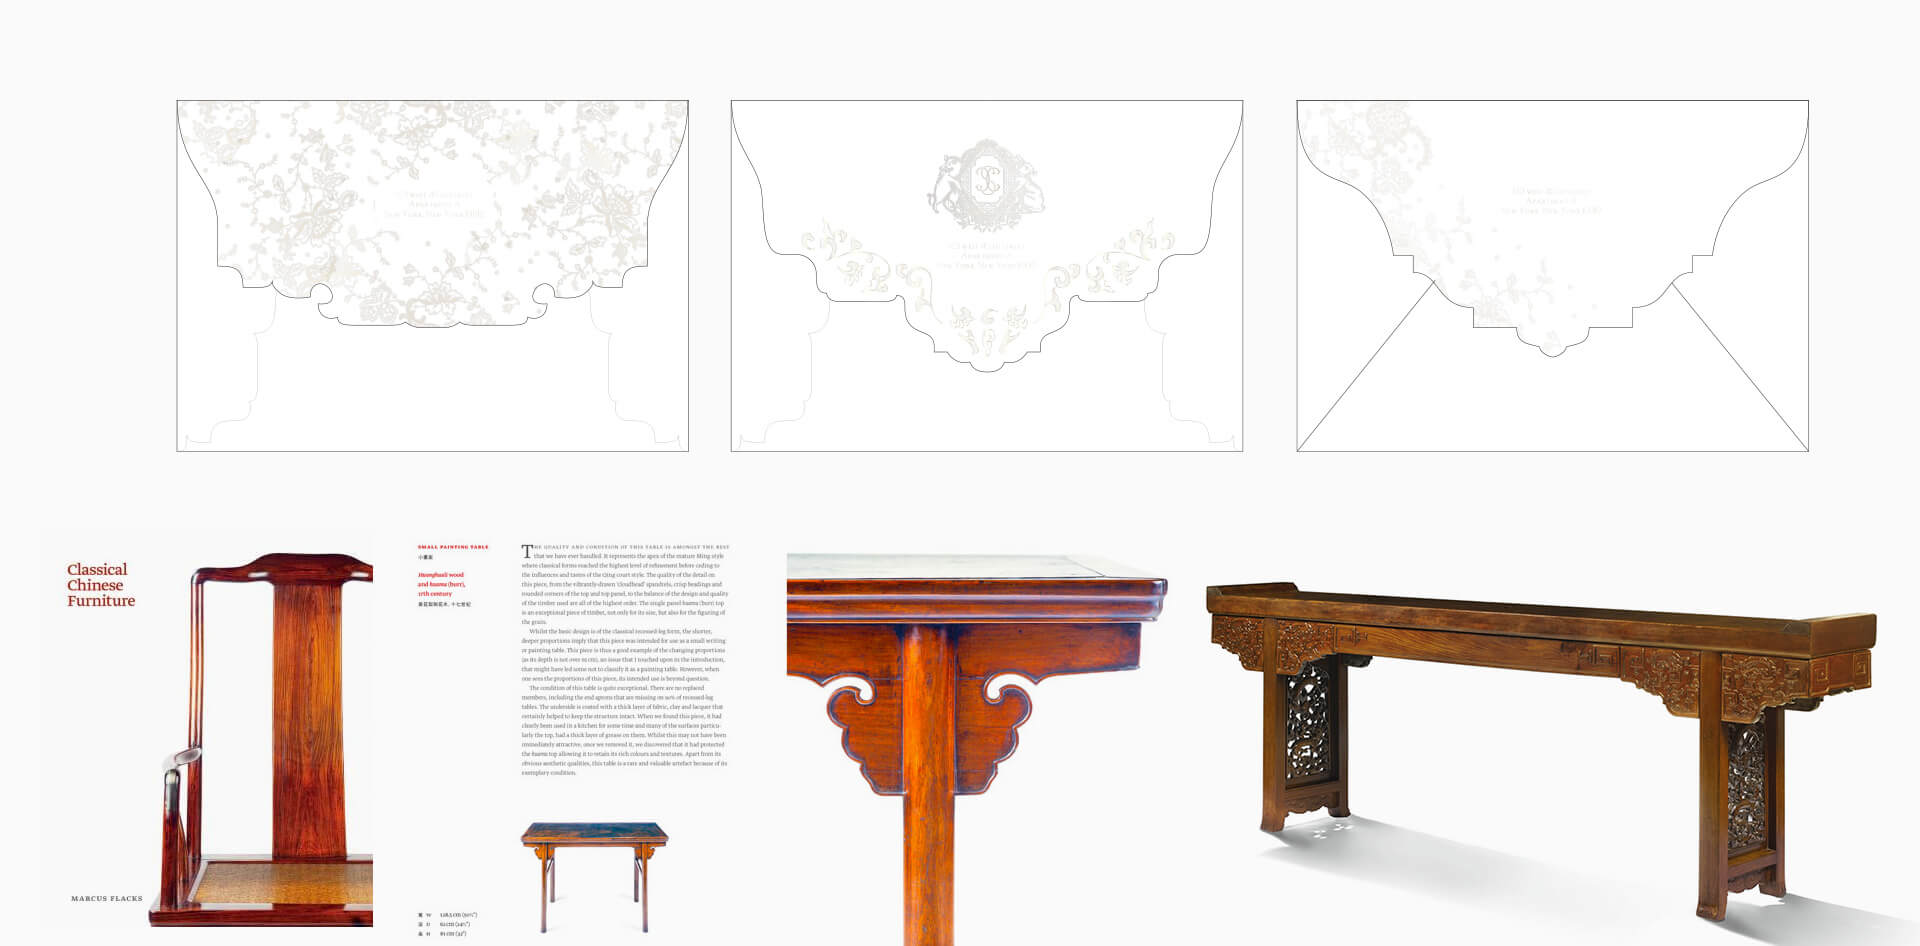 Designs inspired by Chinese furniture and historical art